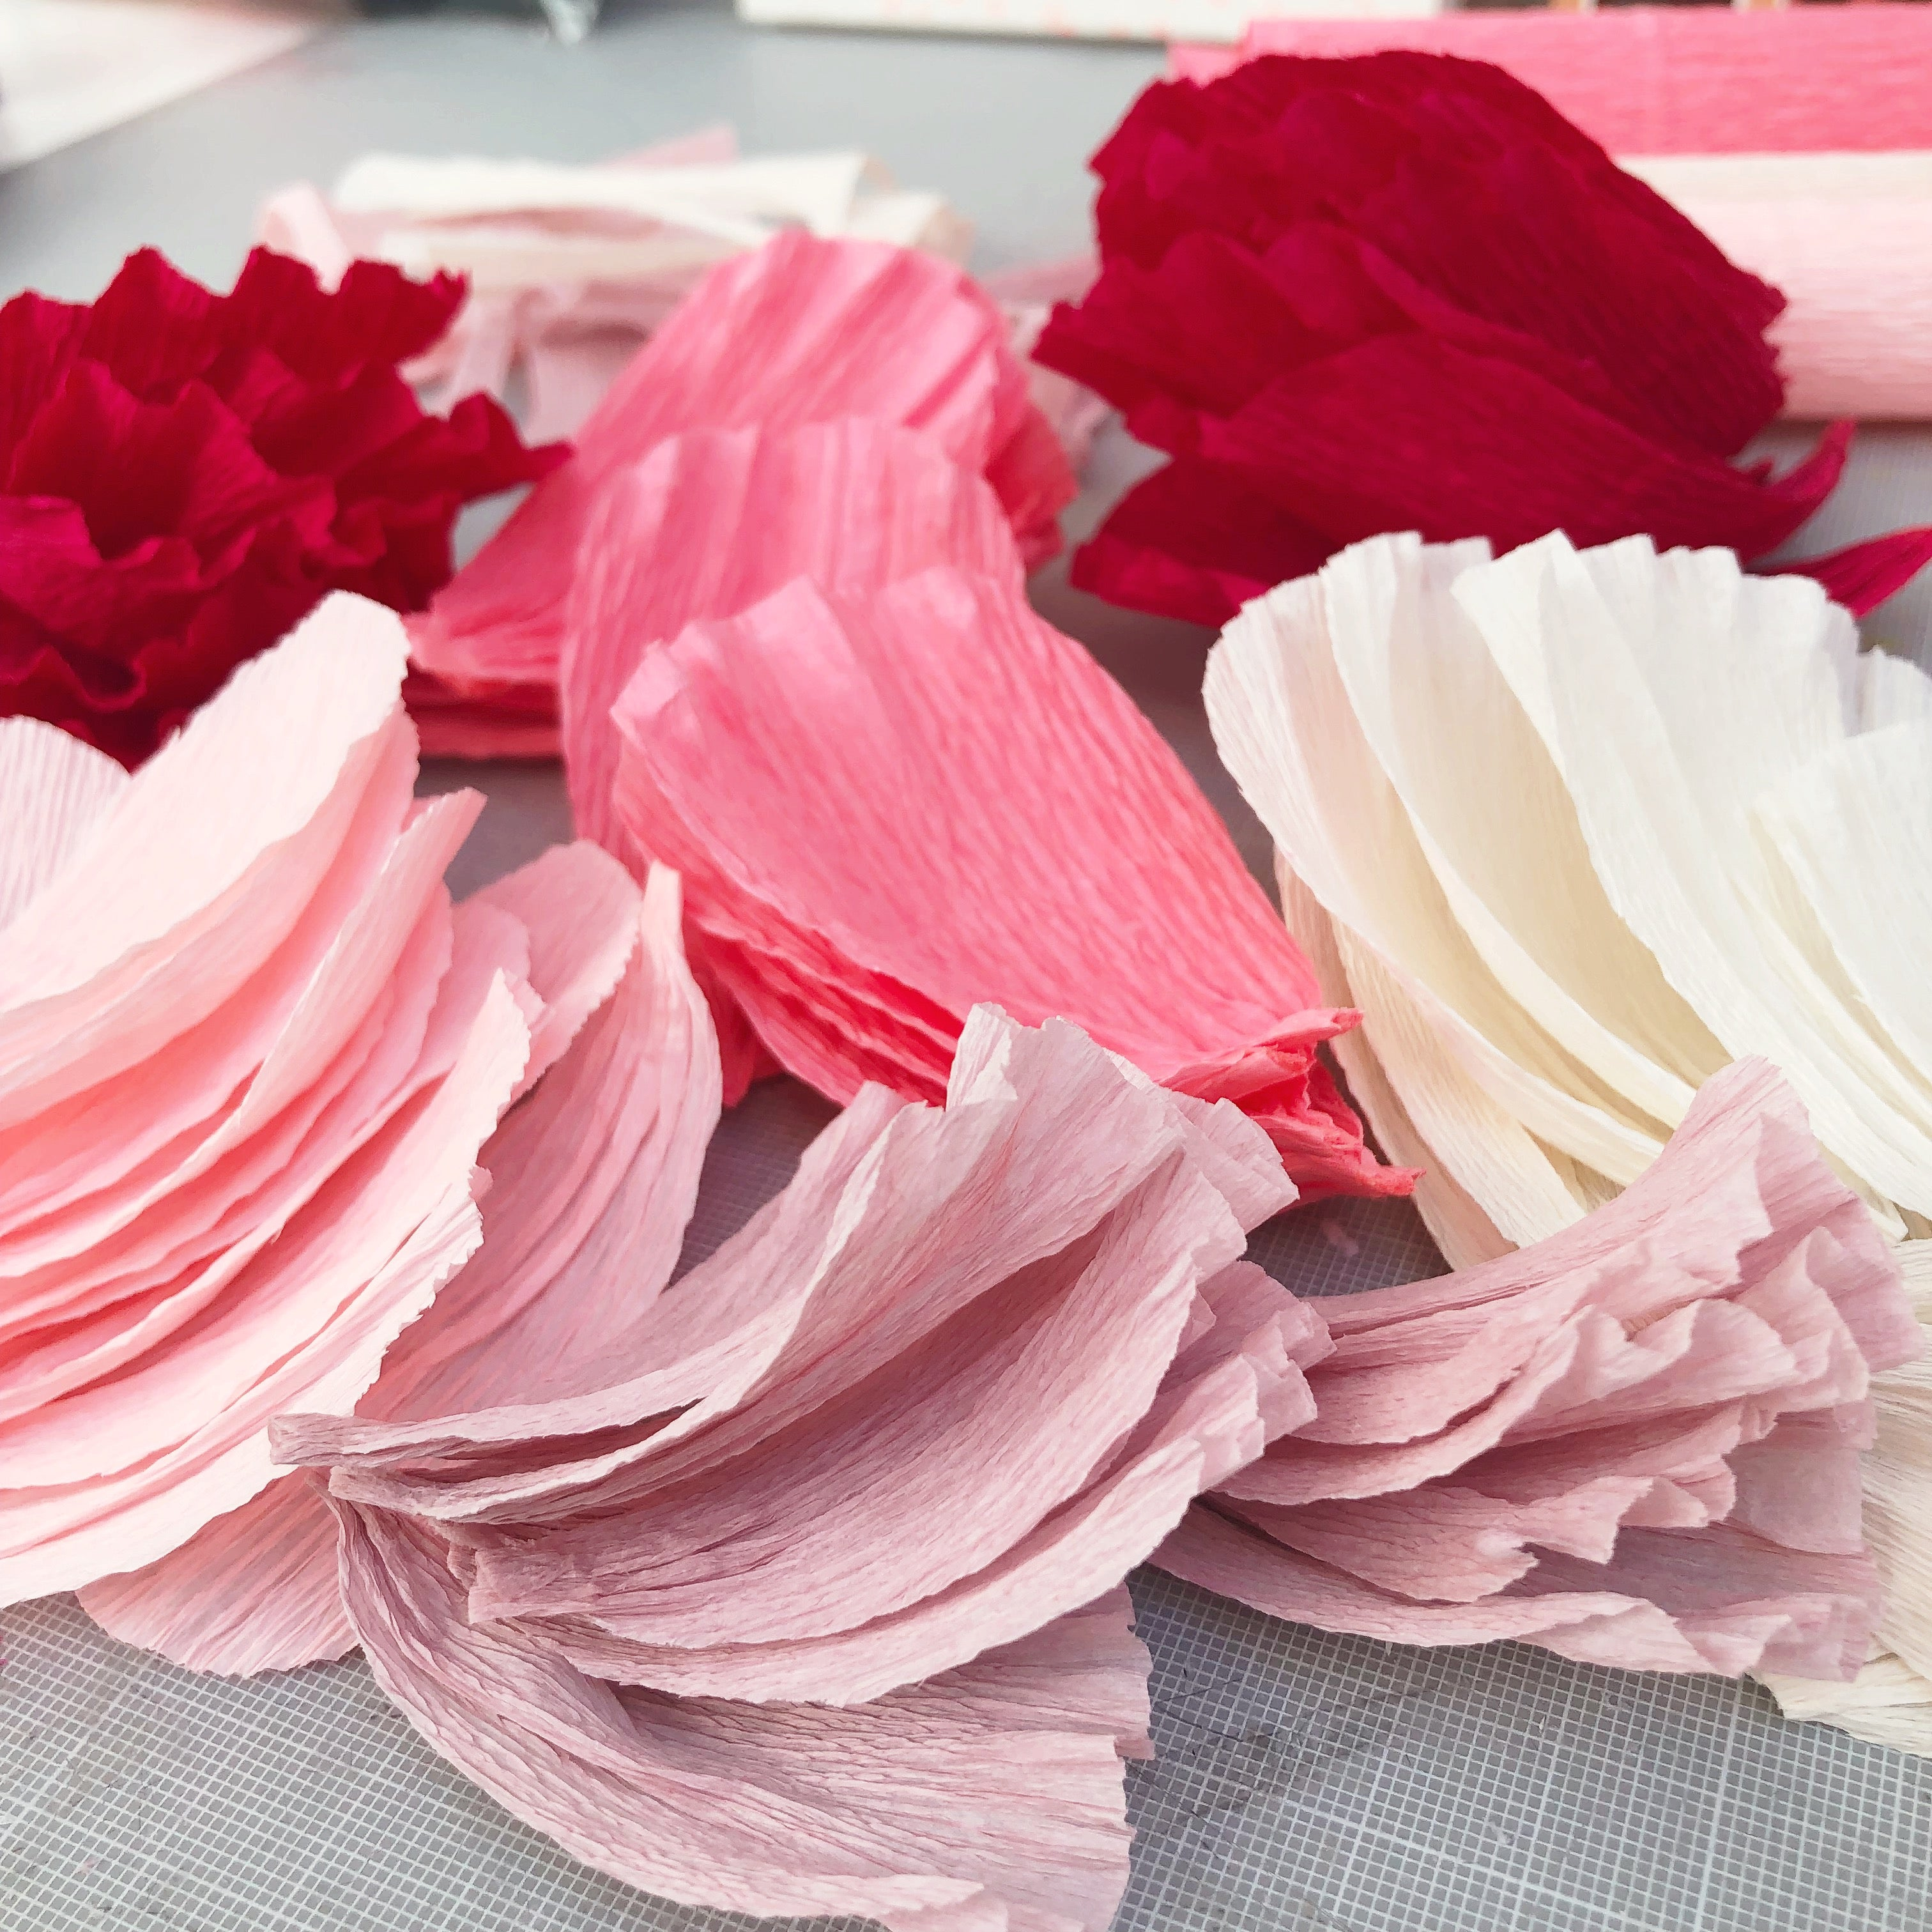 Kit for making 12 paper flowers + video tutorial - multi colourway